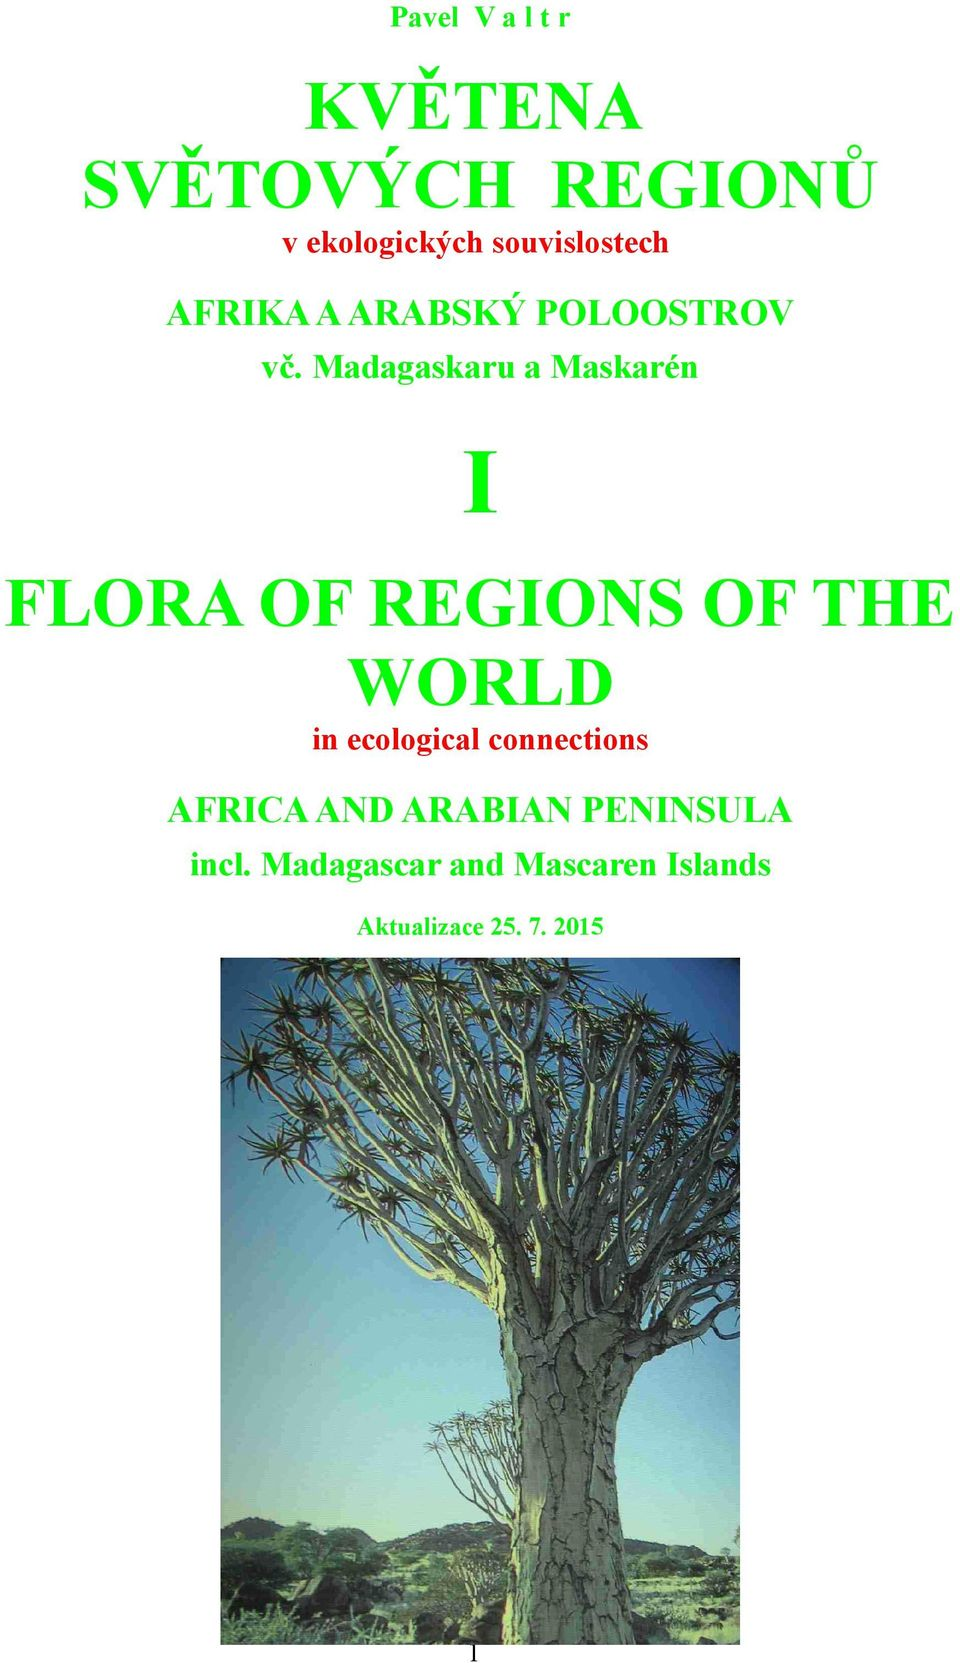 Madagaskaru a Maskarén I FLORA OF REGIONS OF THE WORLD in ecological